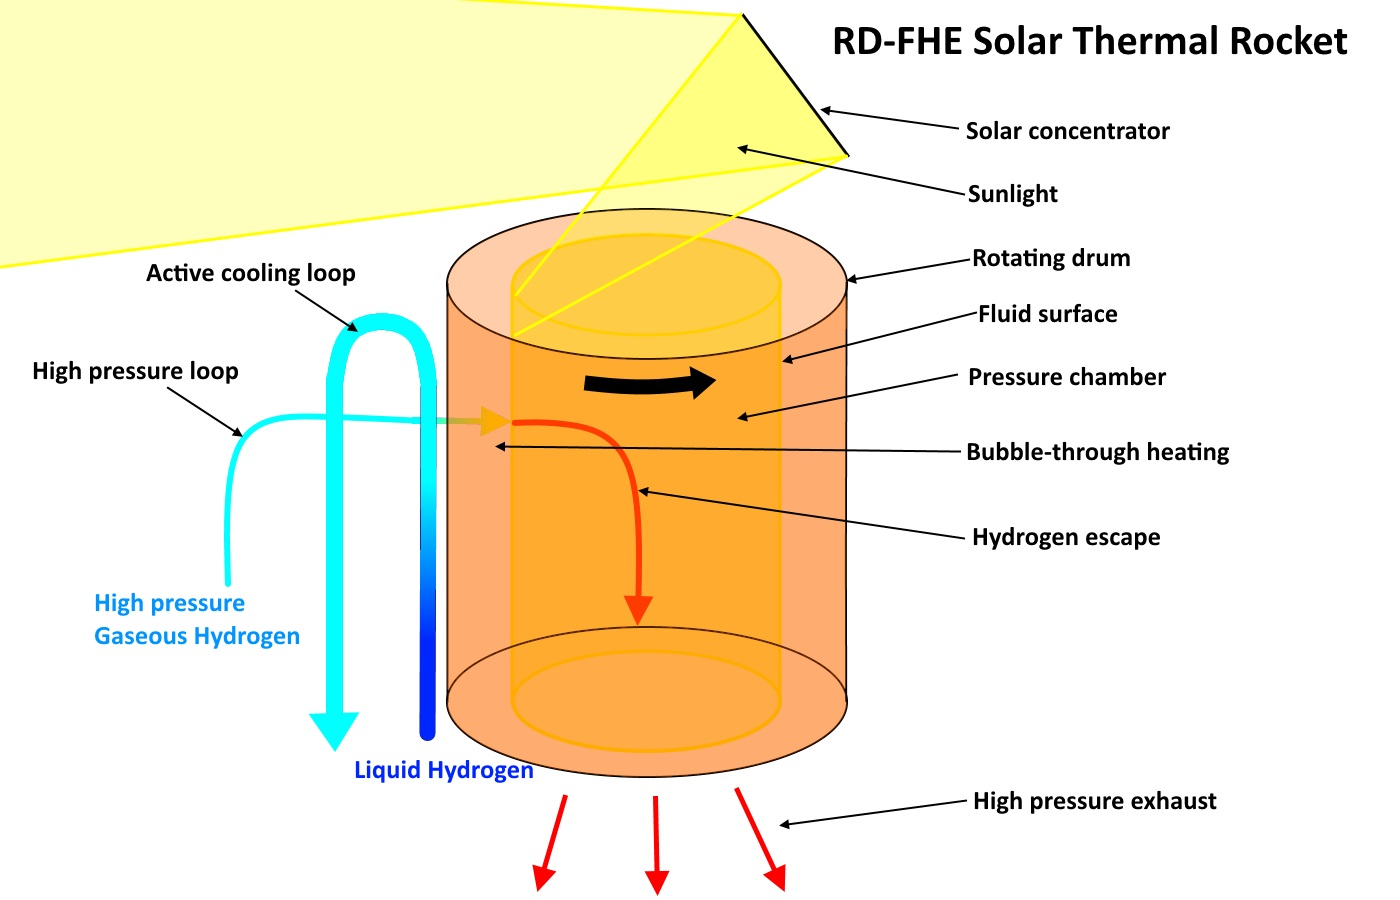 medium resolution of here is a design that can use liquid rhenium as a heat exchanger